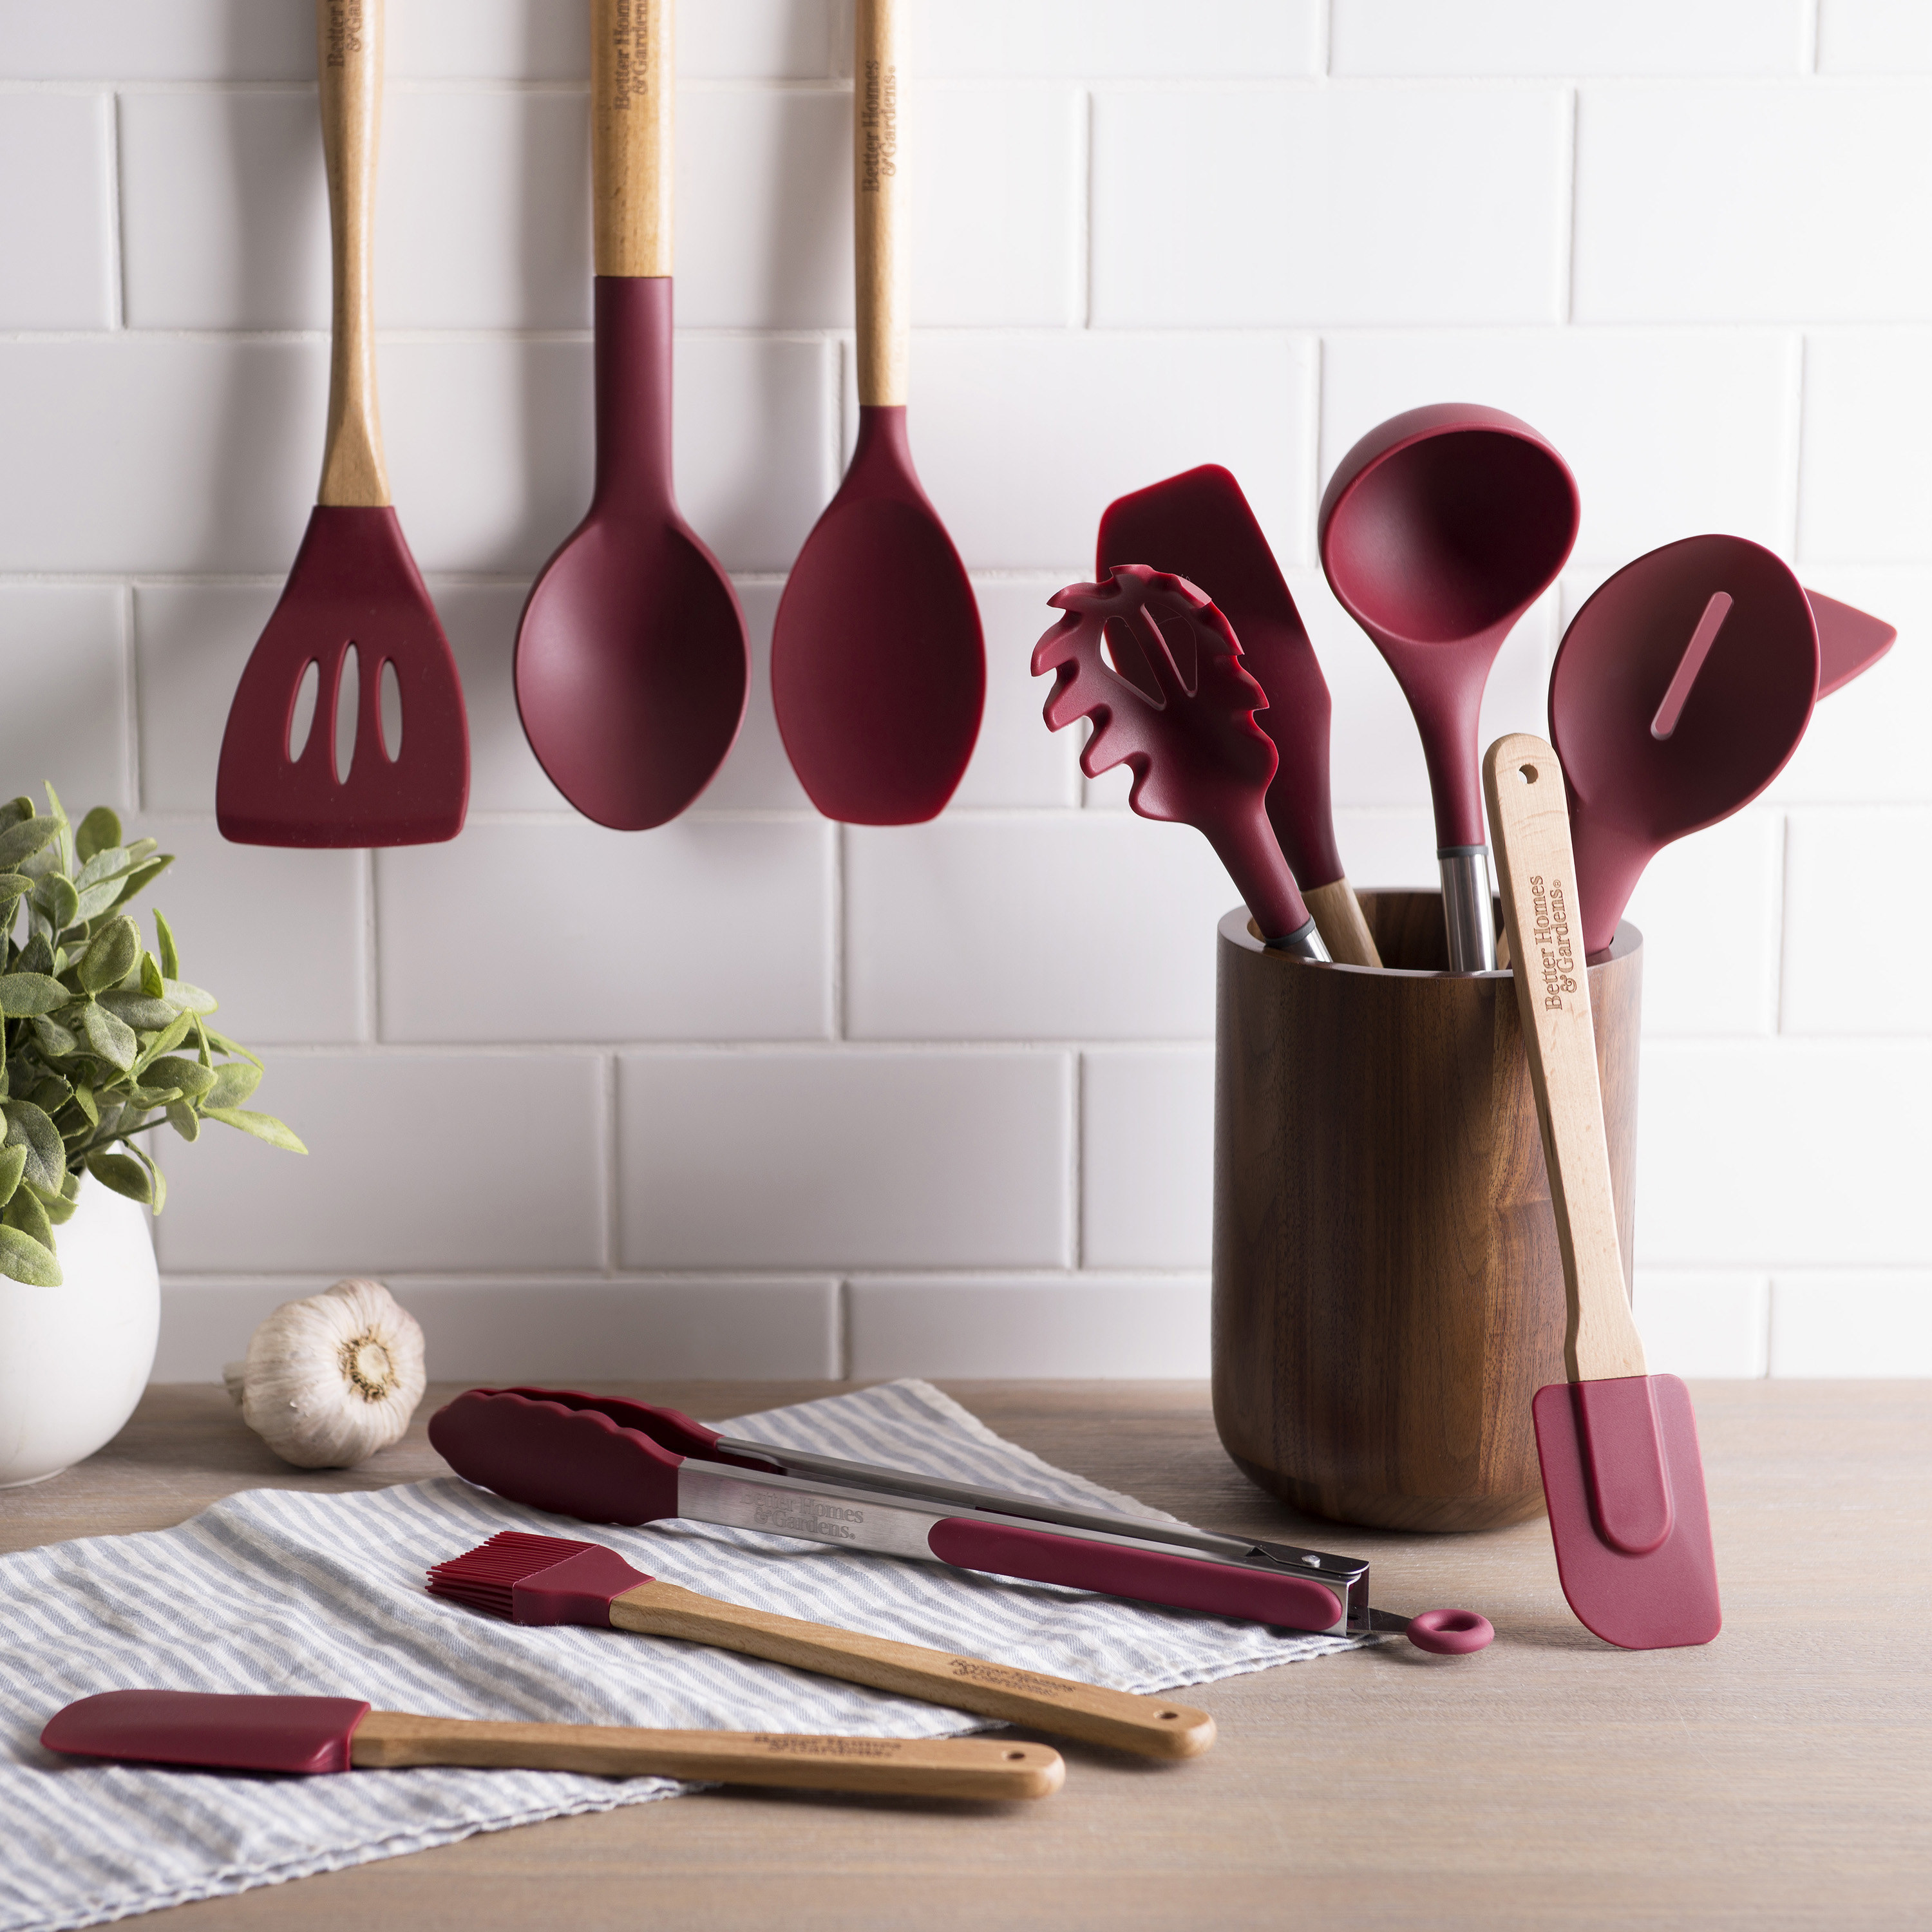 merlot-colored 12-piece silicone utensil set on a table, hanging, and in a utensil jar